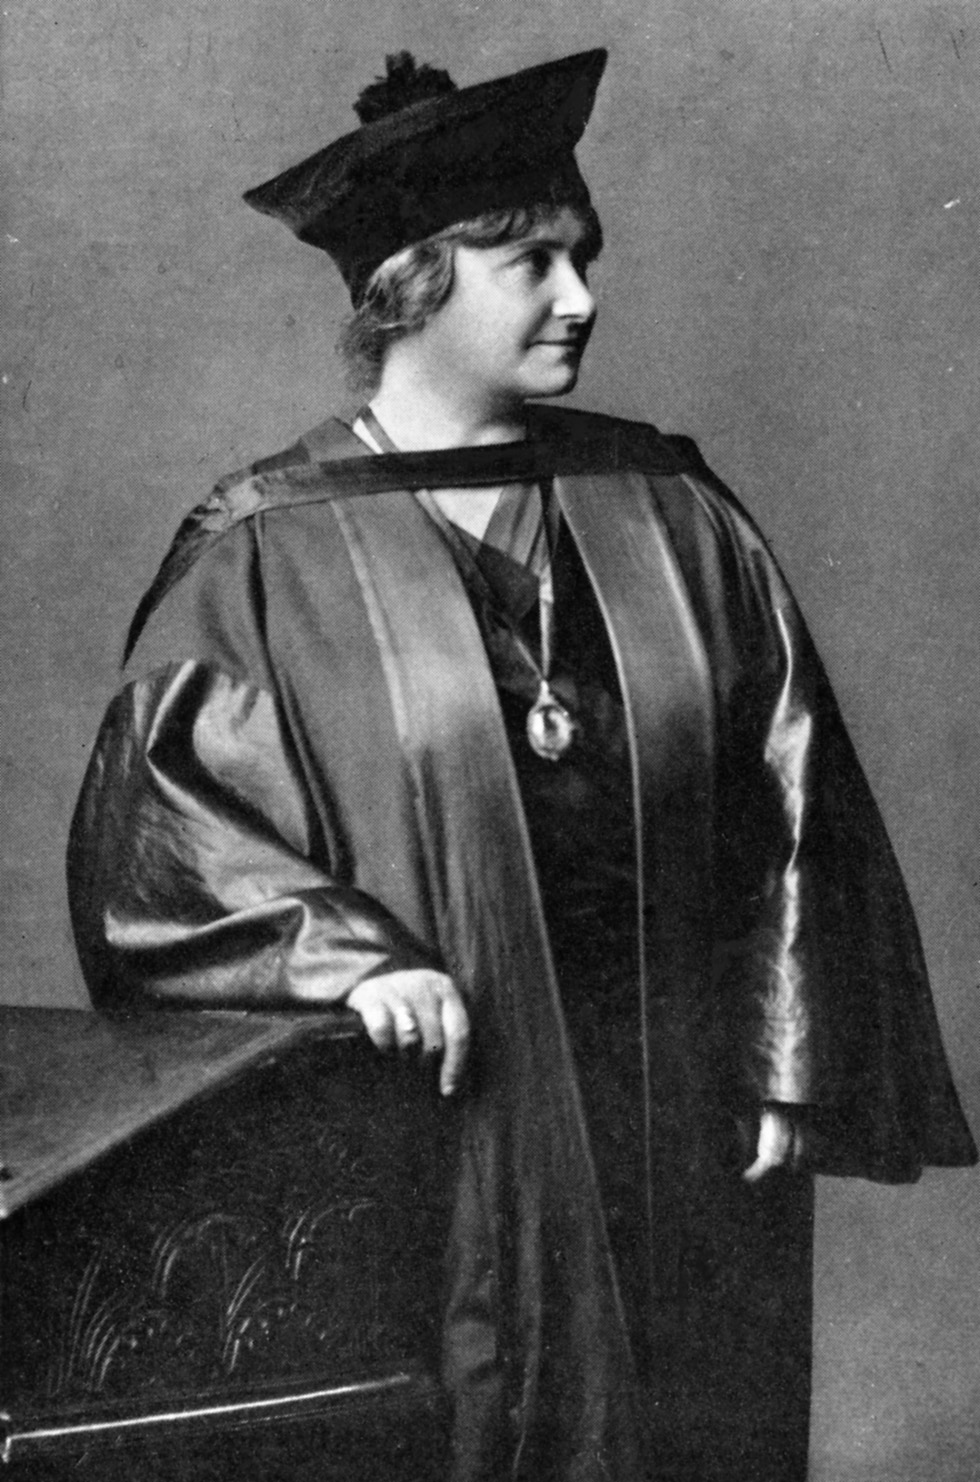 circa 1920: Professor Maria Montessori (1870 - 1952) in academic gown. She was the first woman to obtain a medical degree in Italy - from the University of Rome and developed the system of education for young children based on spontaneity of expression and freedom from restraint. (Photo by Hulton Archive/Getty Images)